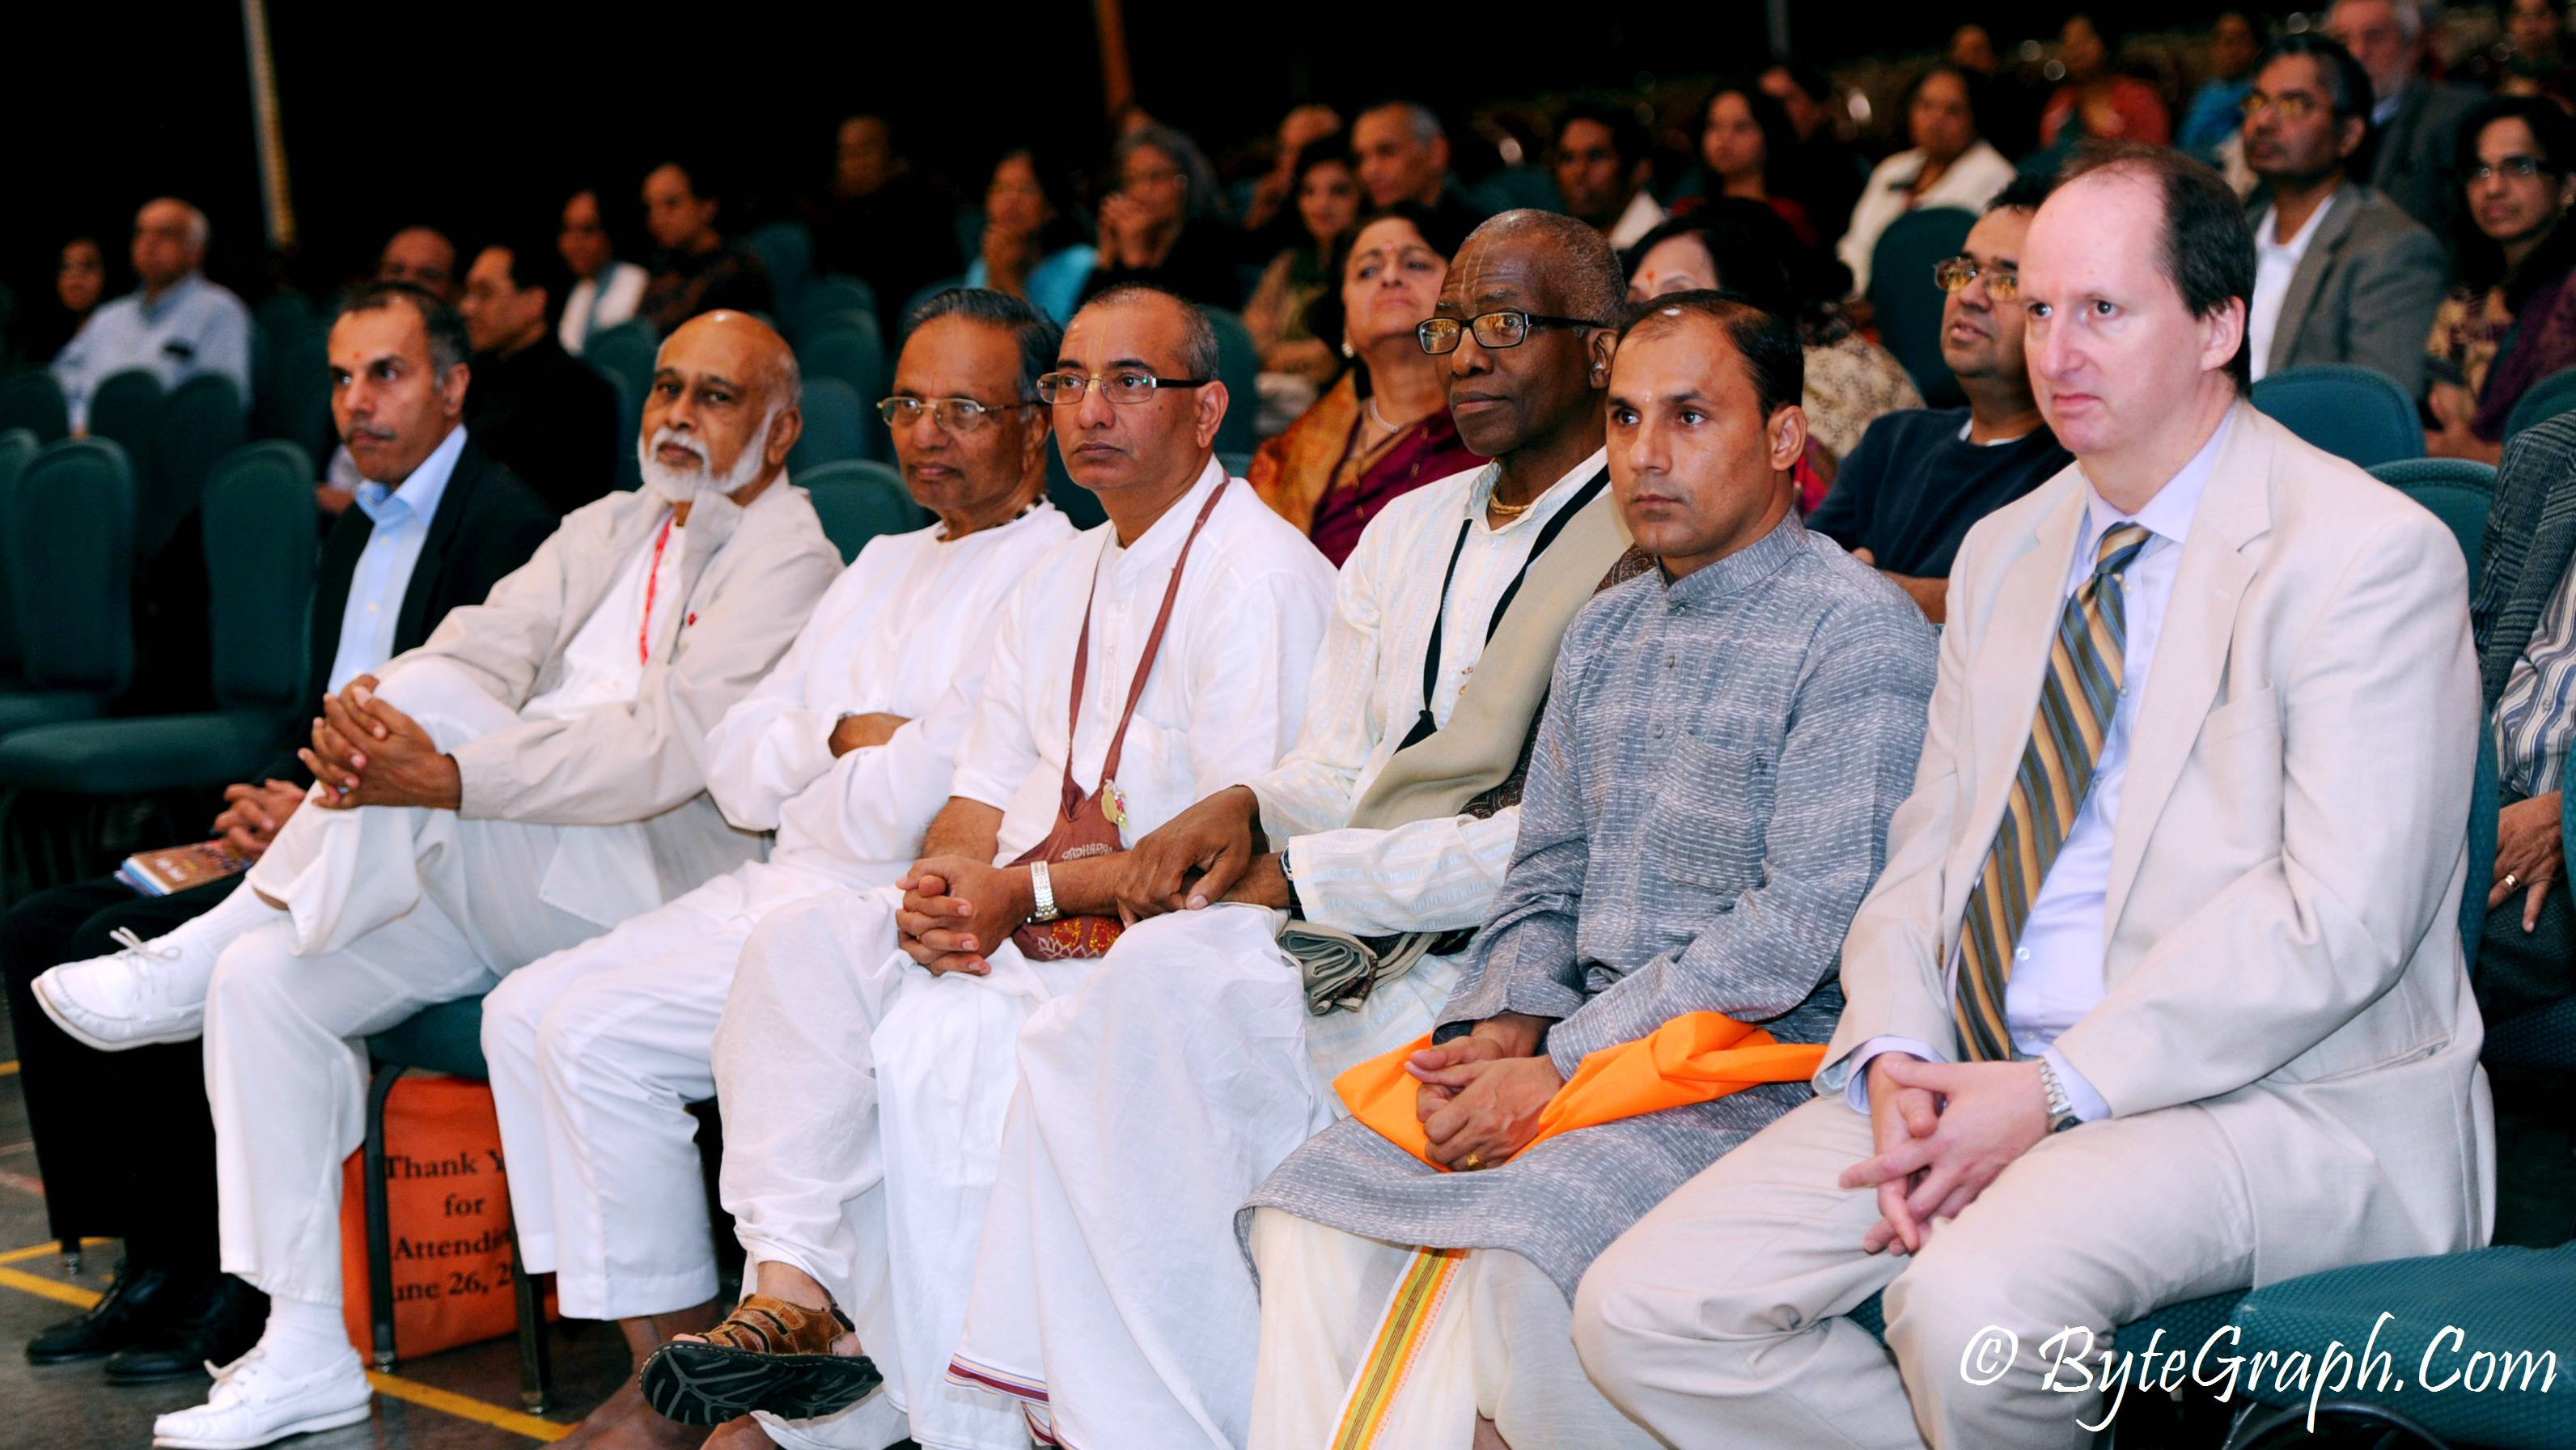 USHA Event - View of Spiritual Leaders seated in the audience